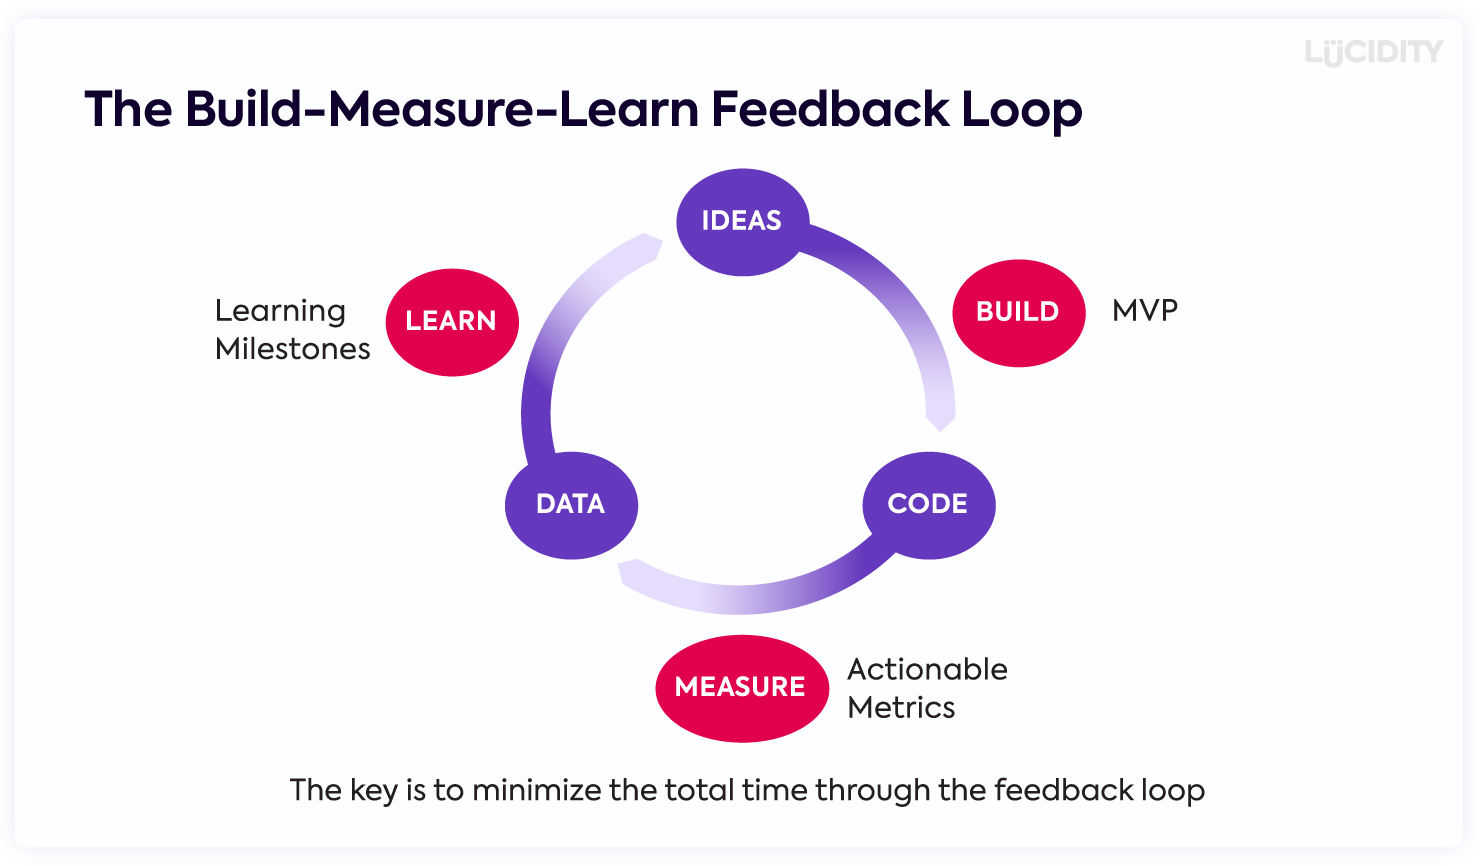 The Build-Measure-Learn Feedback Loop from Eric Ries and The Lean Startup